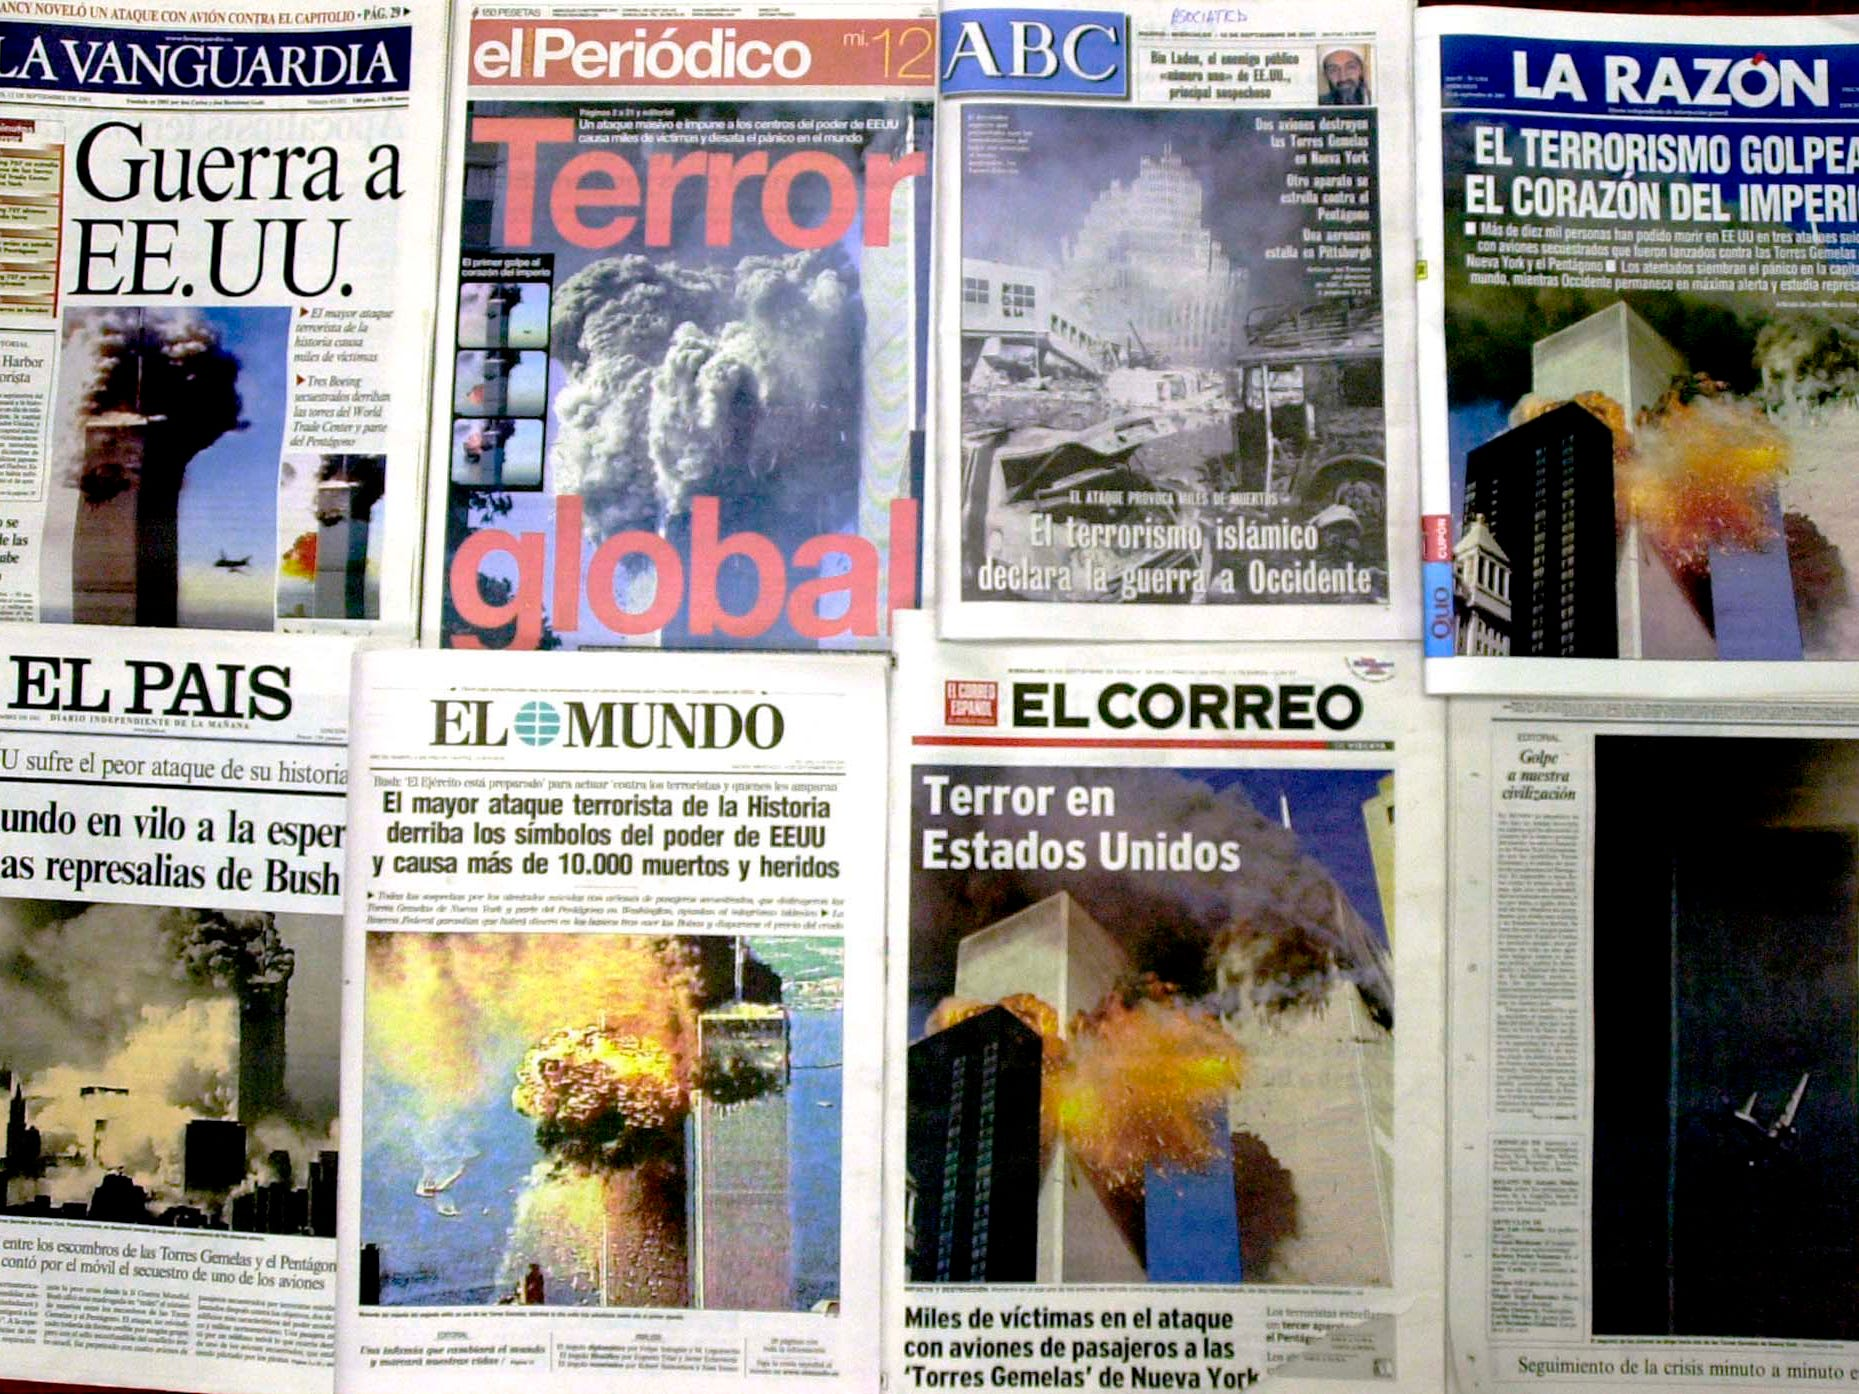 Front pages of Spanish newspapers are pictured in Madrid, Spain Wednesday Sept. 12, 2001 showing coverage of the terrorist attacks in New York and Washington DC. (AP Photo/Paul White)